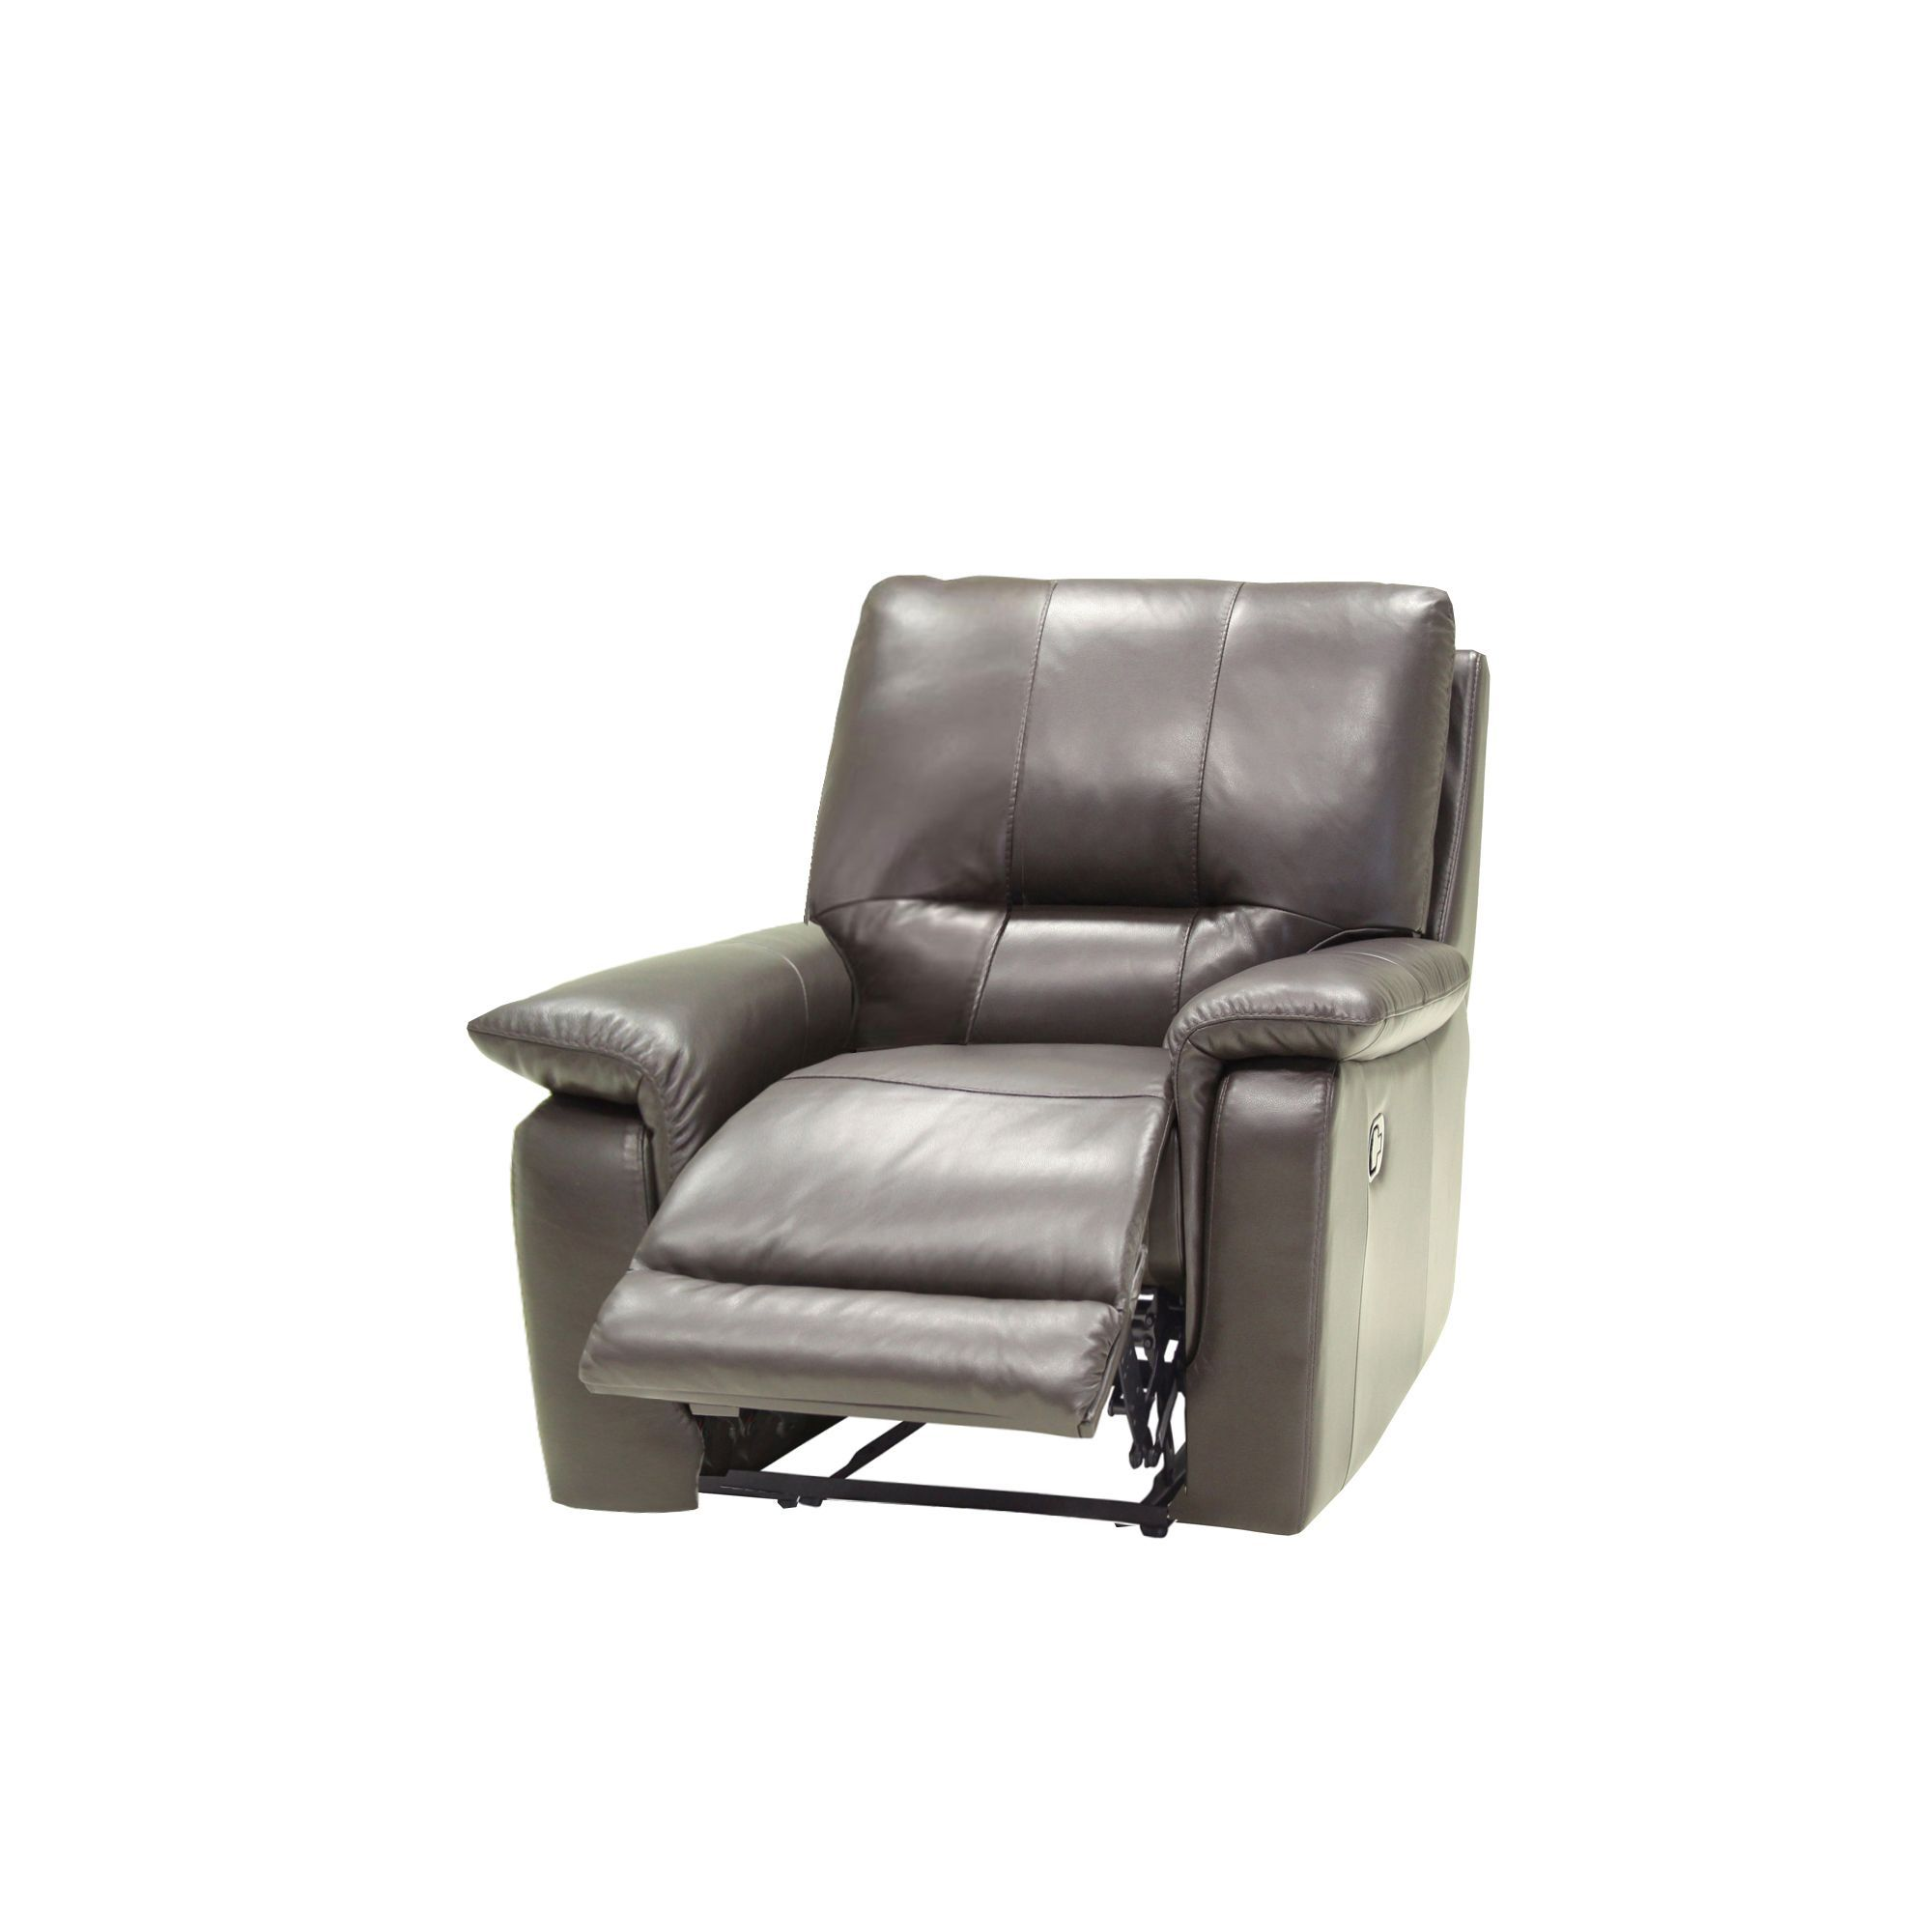 Cookes Collection Melbourne Electric Recliner Armchair ...